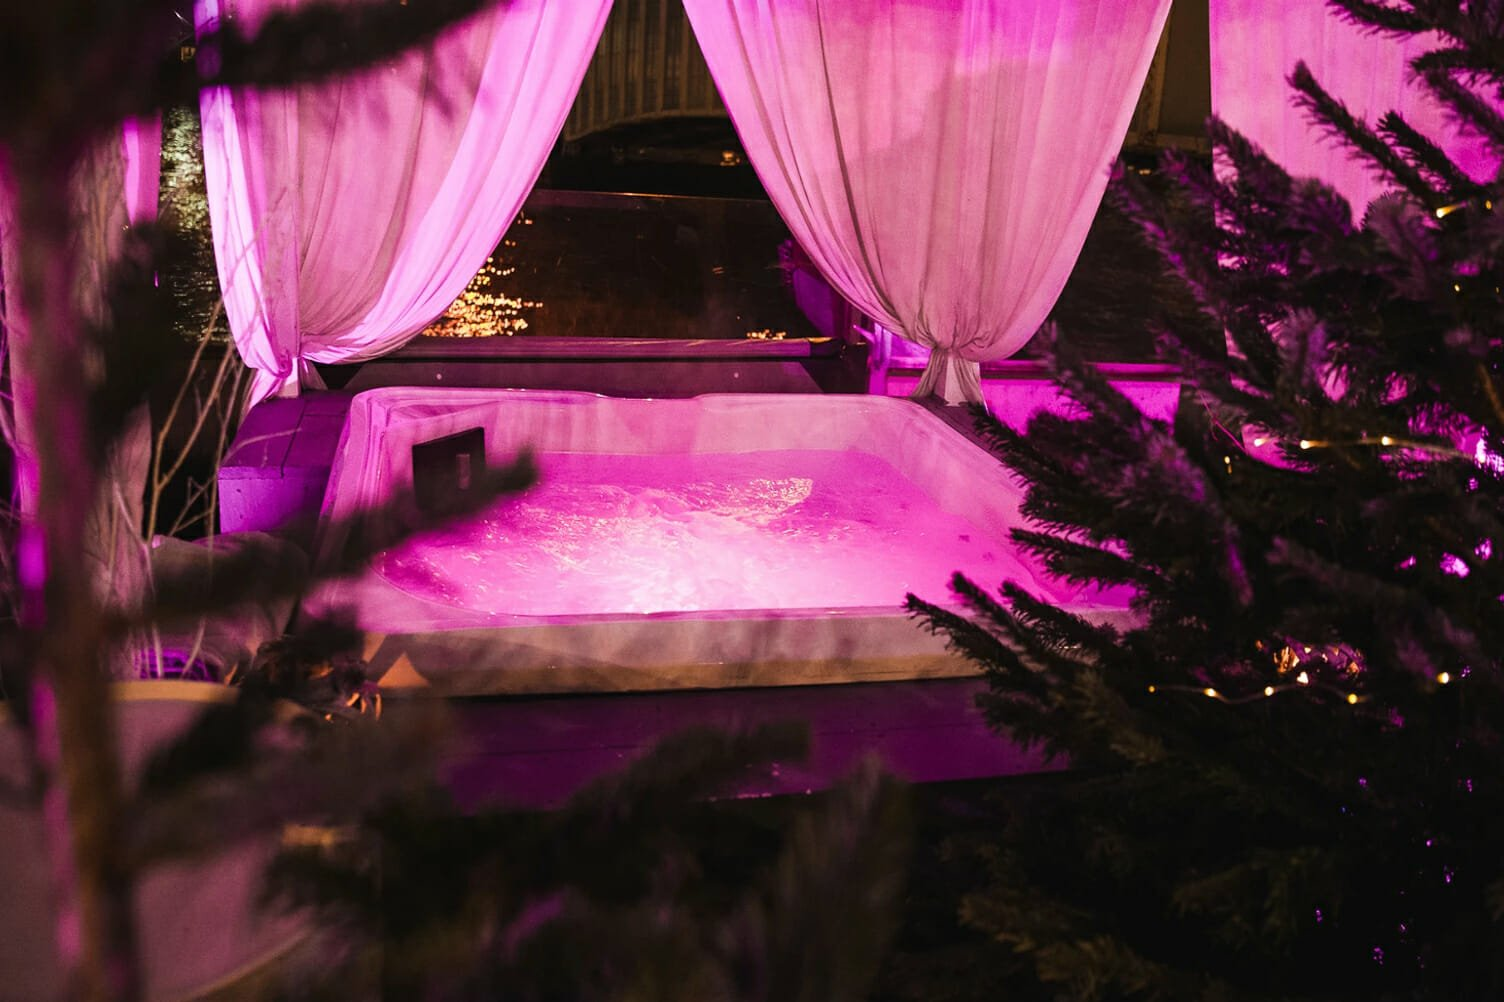 Winterland hot tub